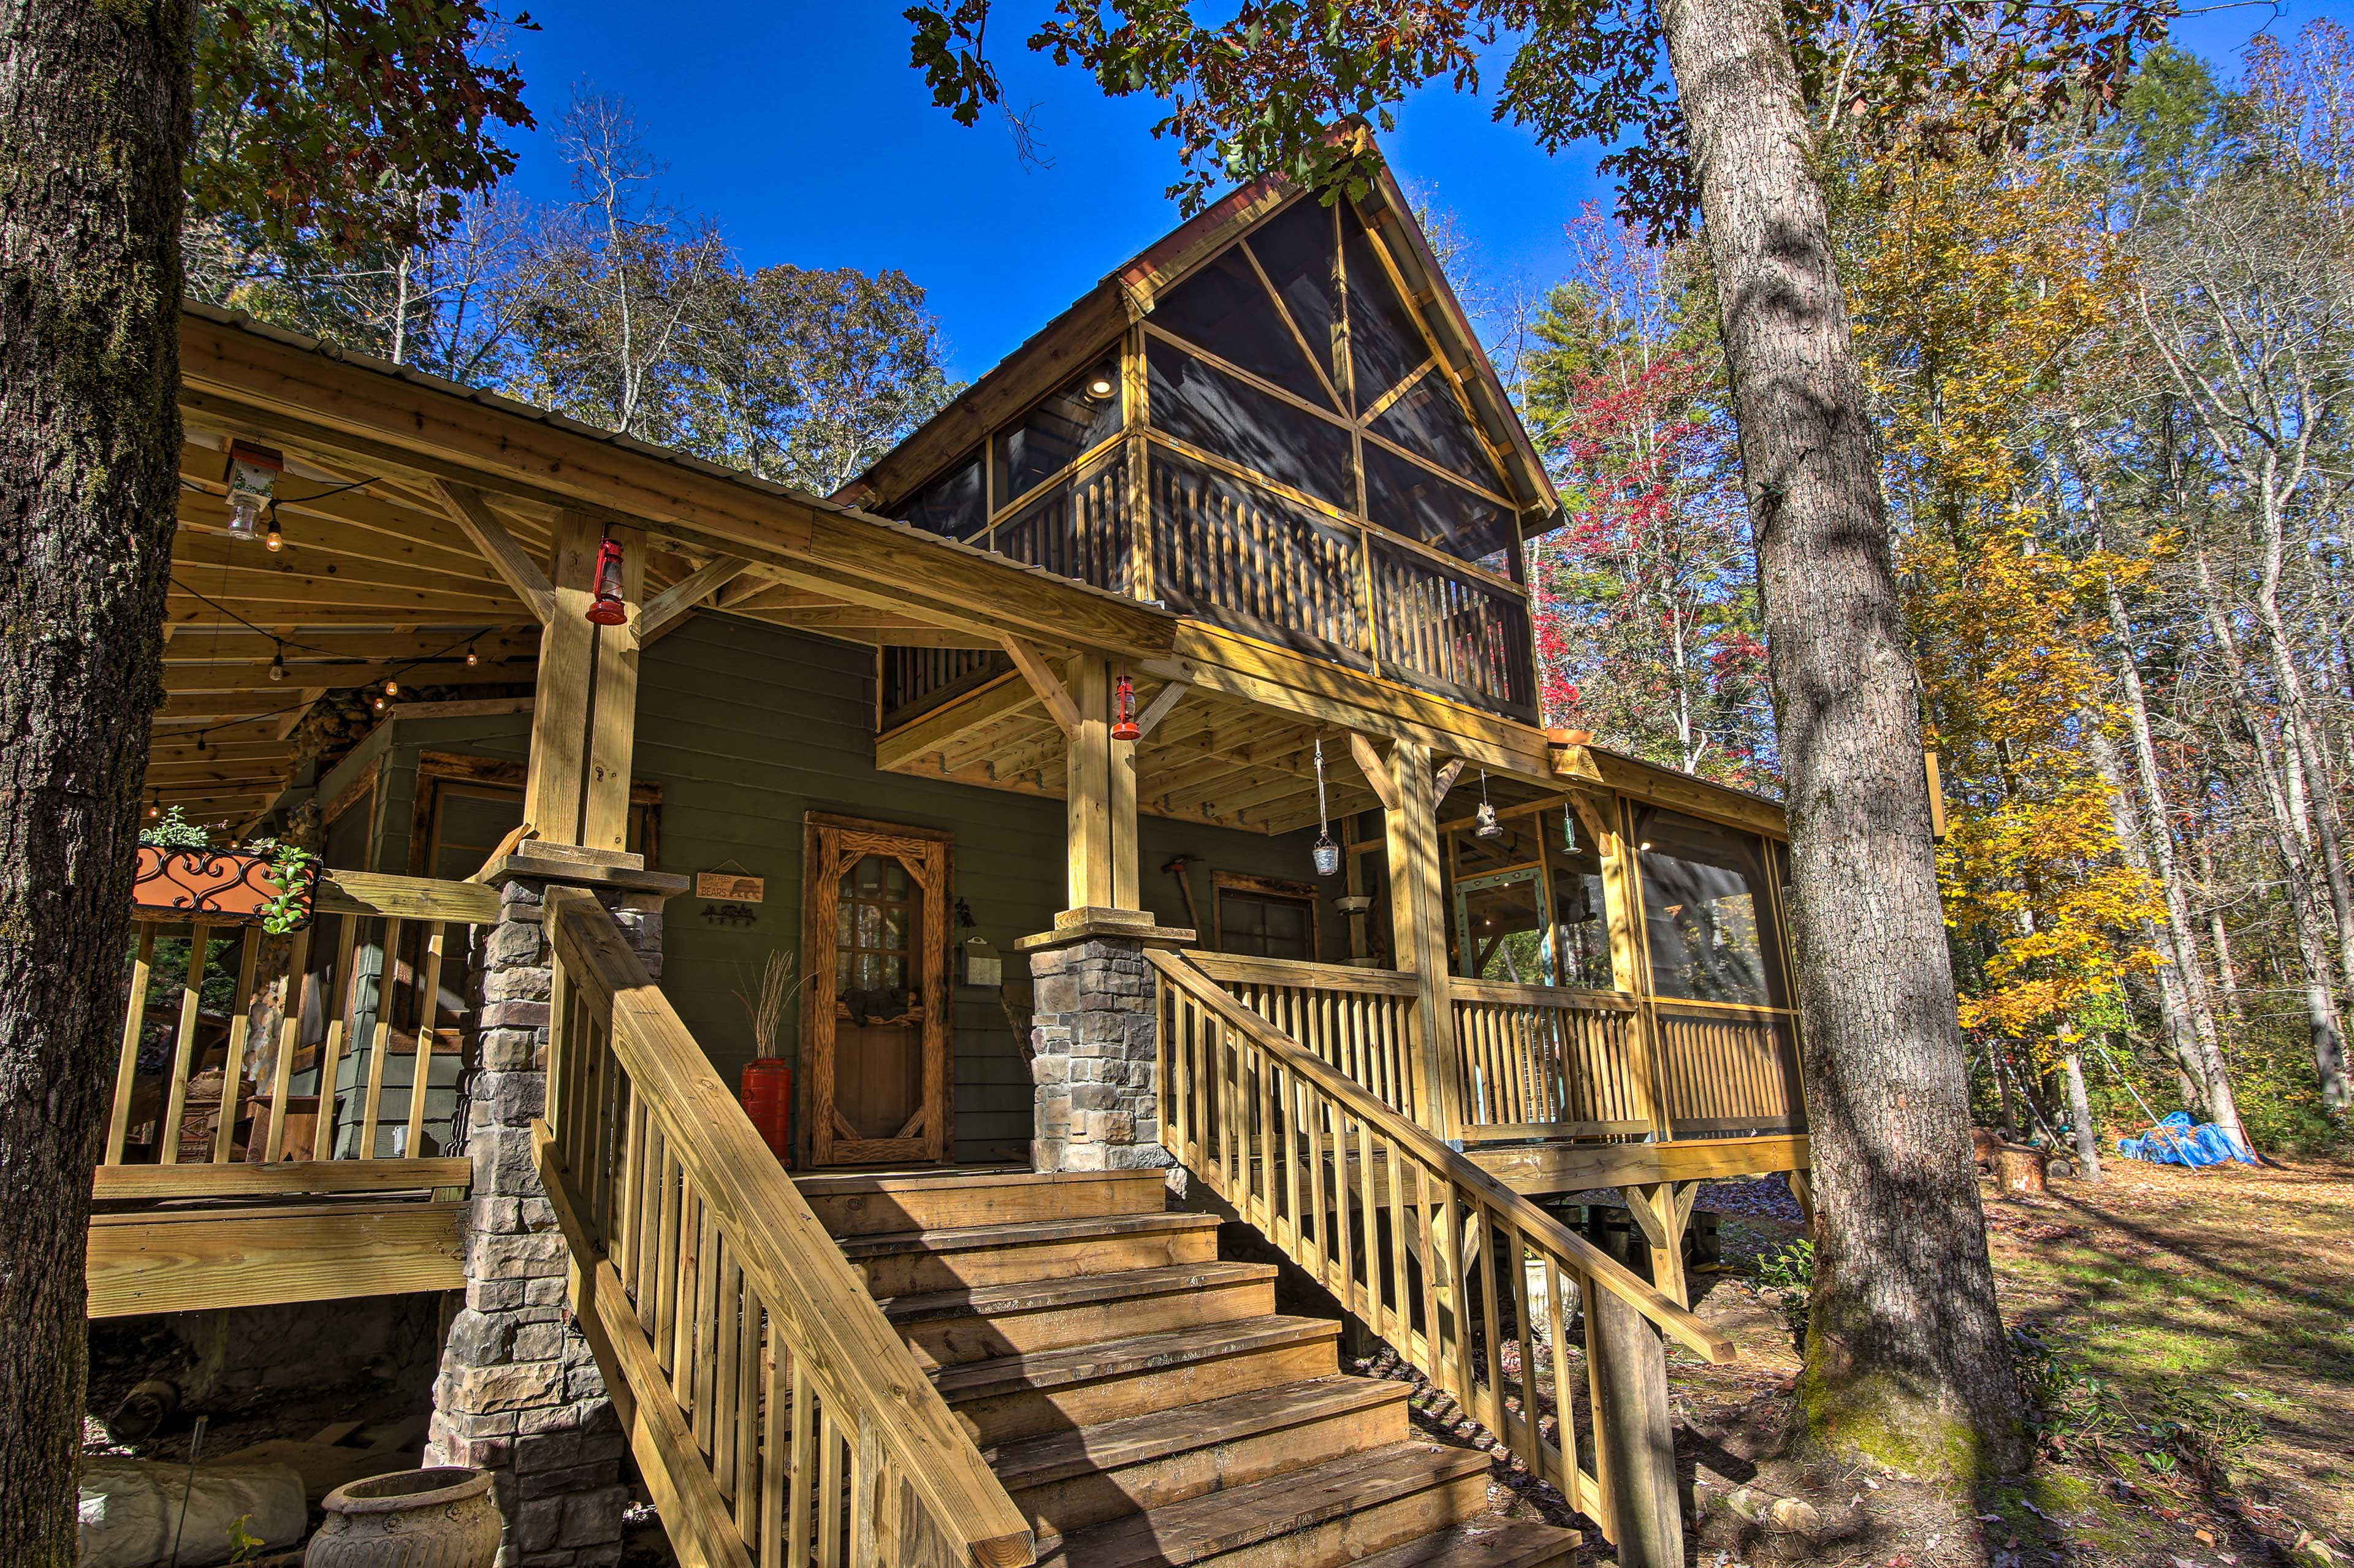 This secluded vacation rental in Sautee Nacoochee is surrounded by tall trees.